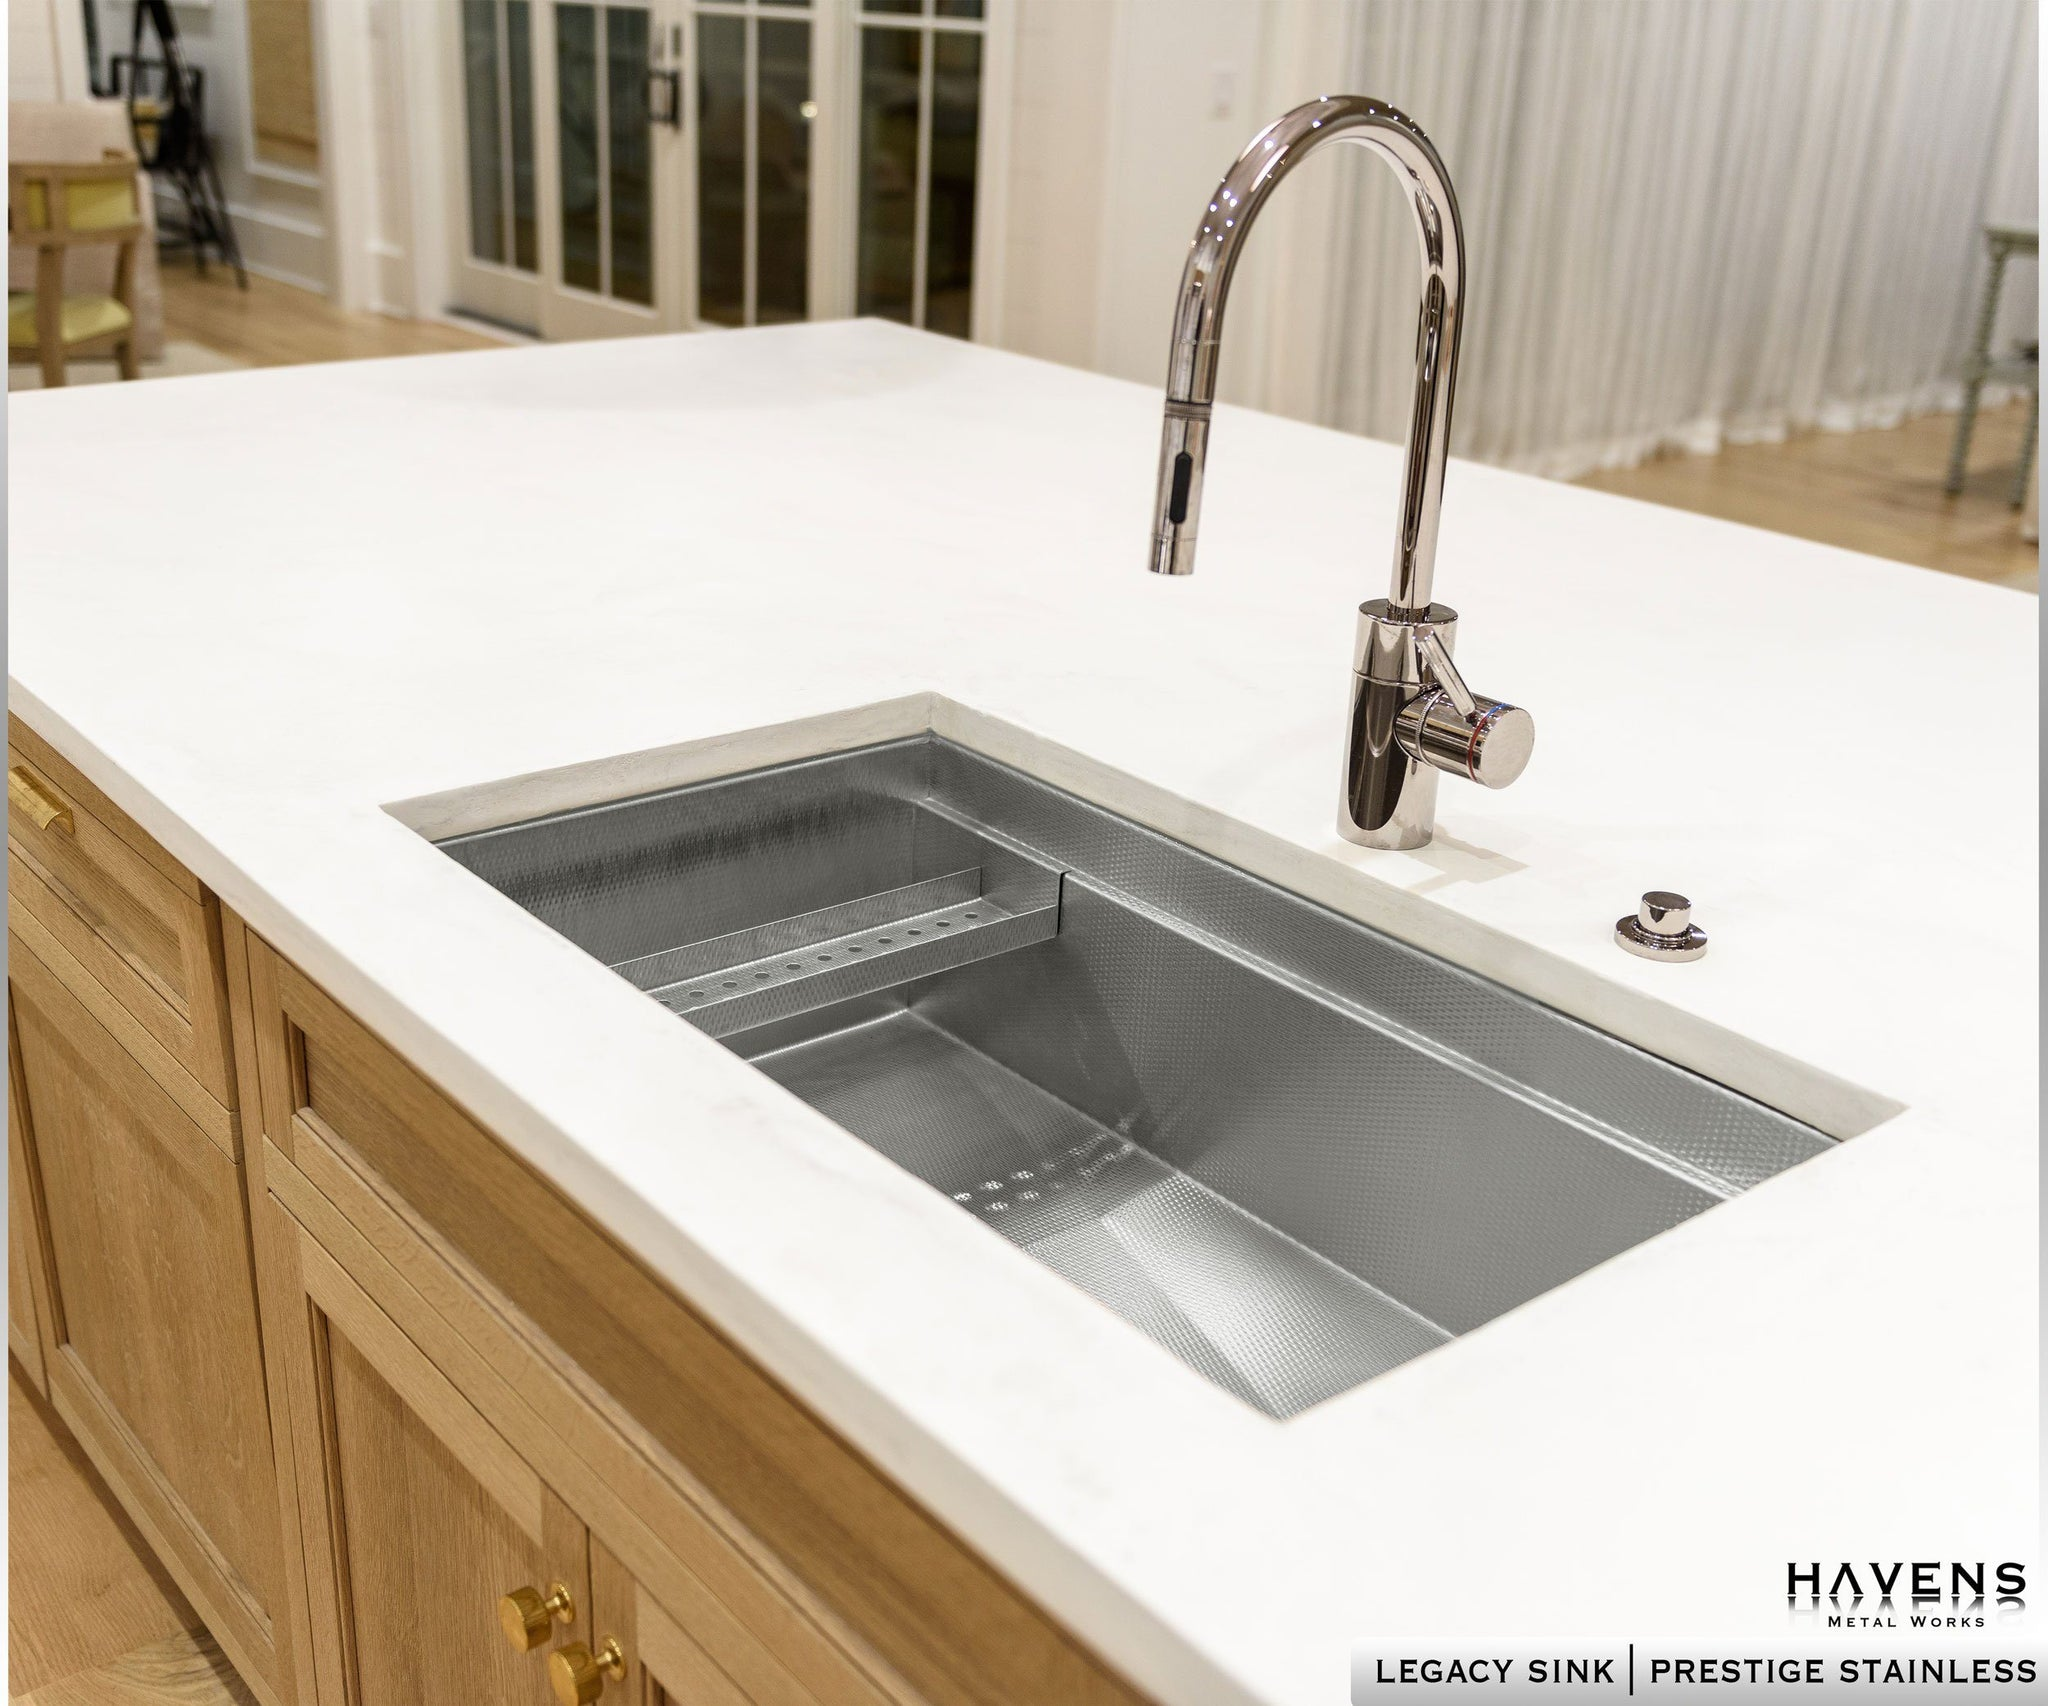 Undermount stainless steel kitchen sink made from 16 gauge steel. Textured stainless sink with a chrome faucet.